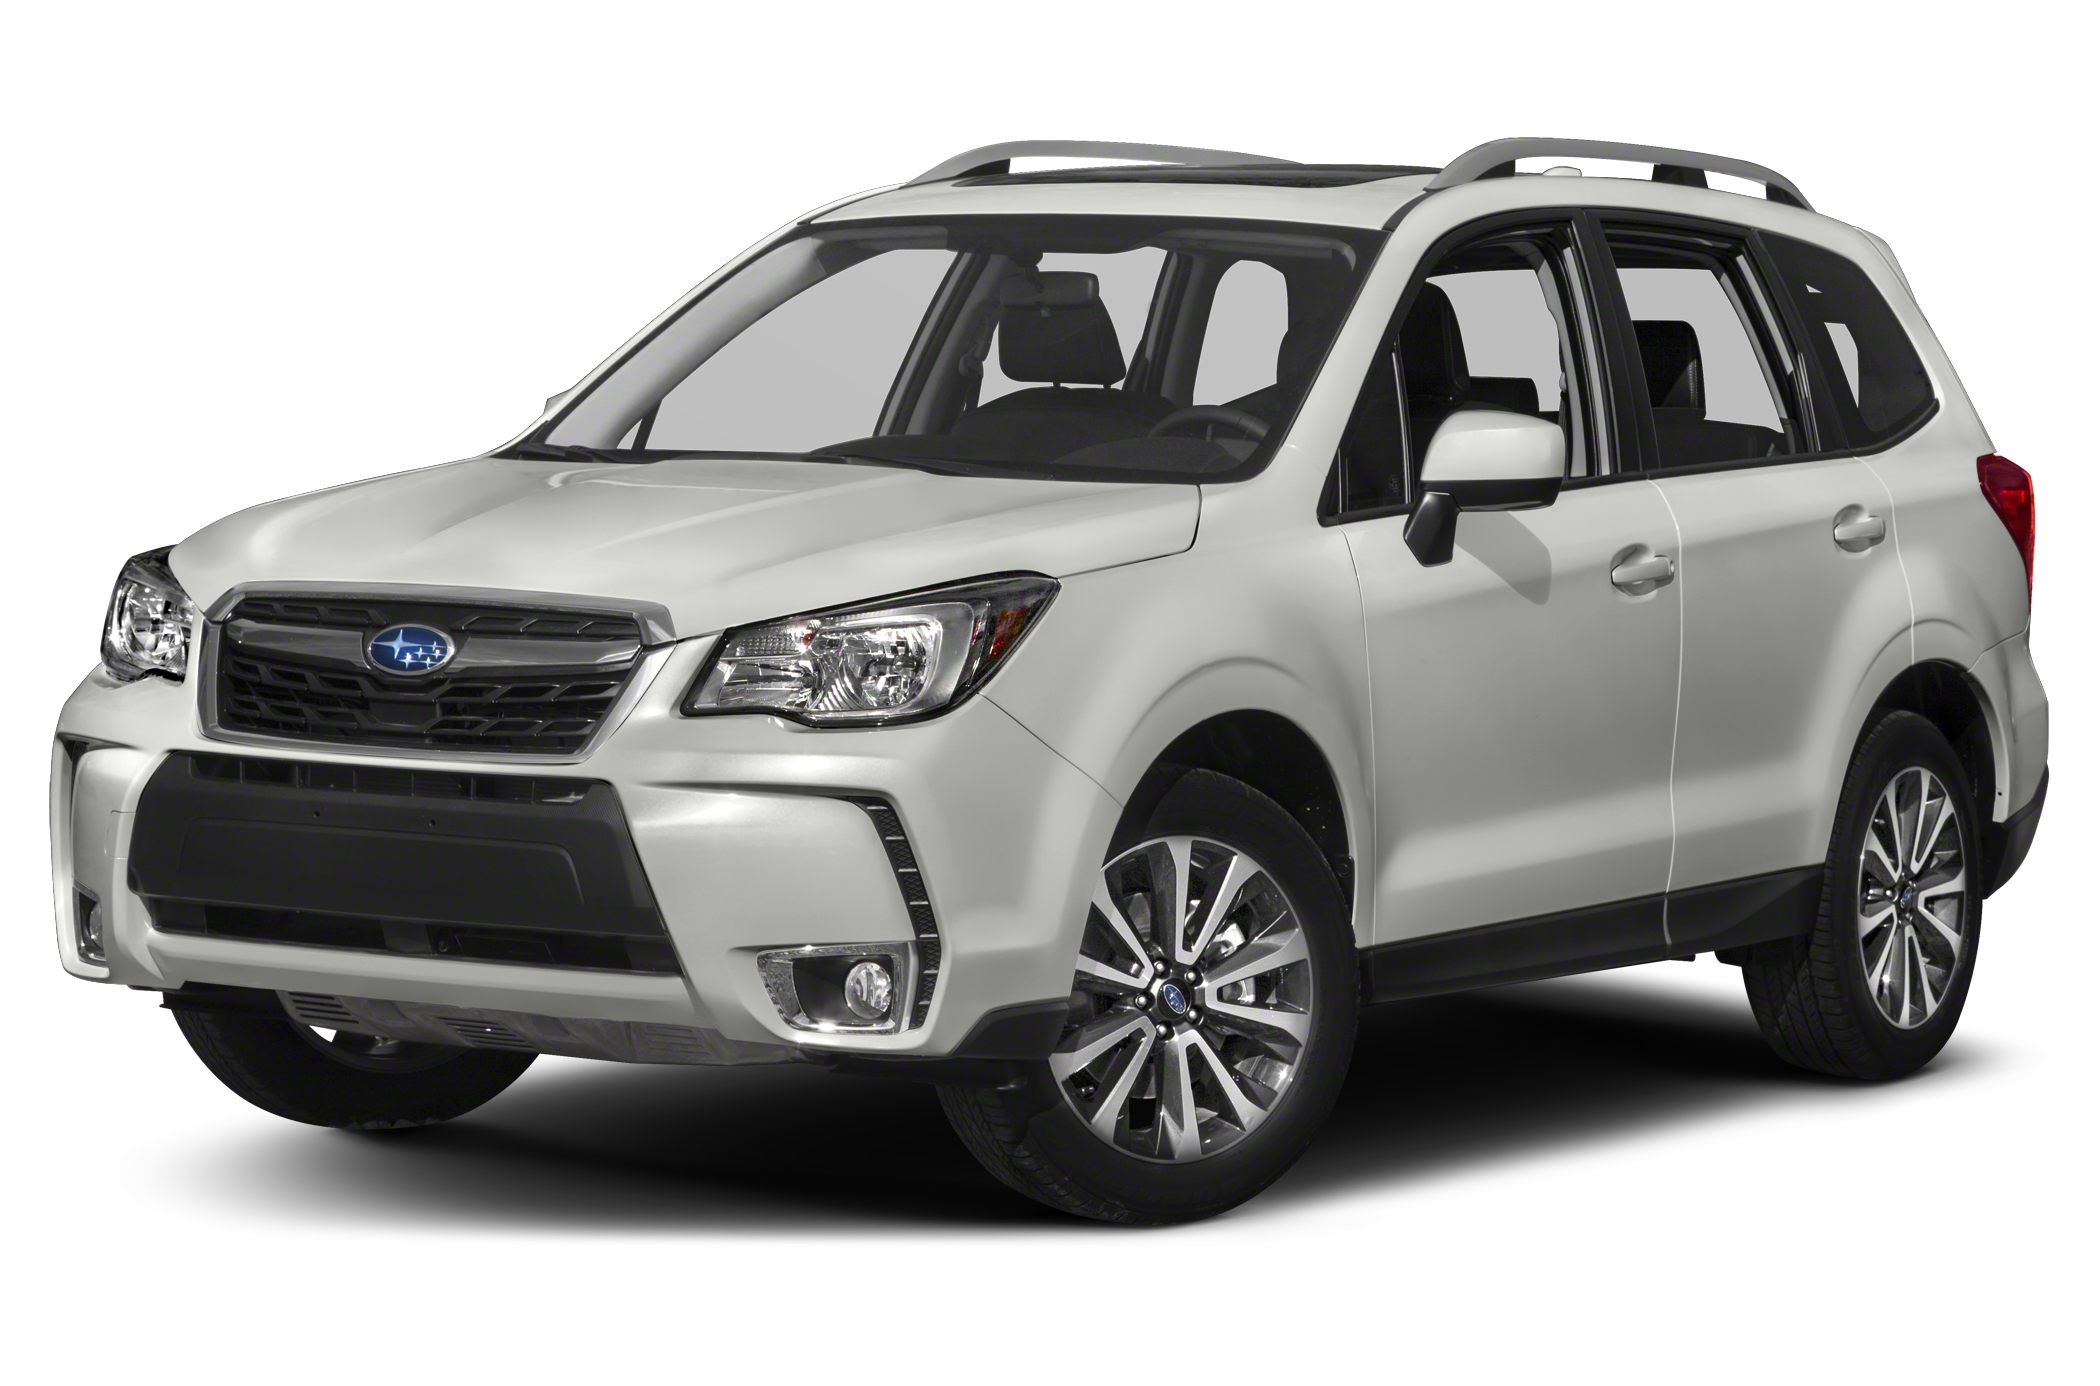 2018 Subaru Forester 2 0xt Premium 4dr All Wheel Drive Pricing And Options